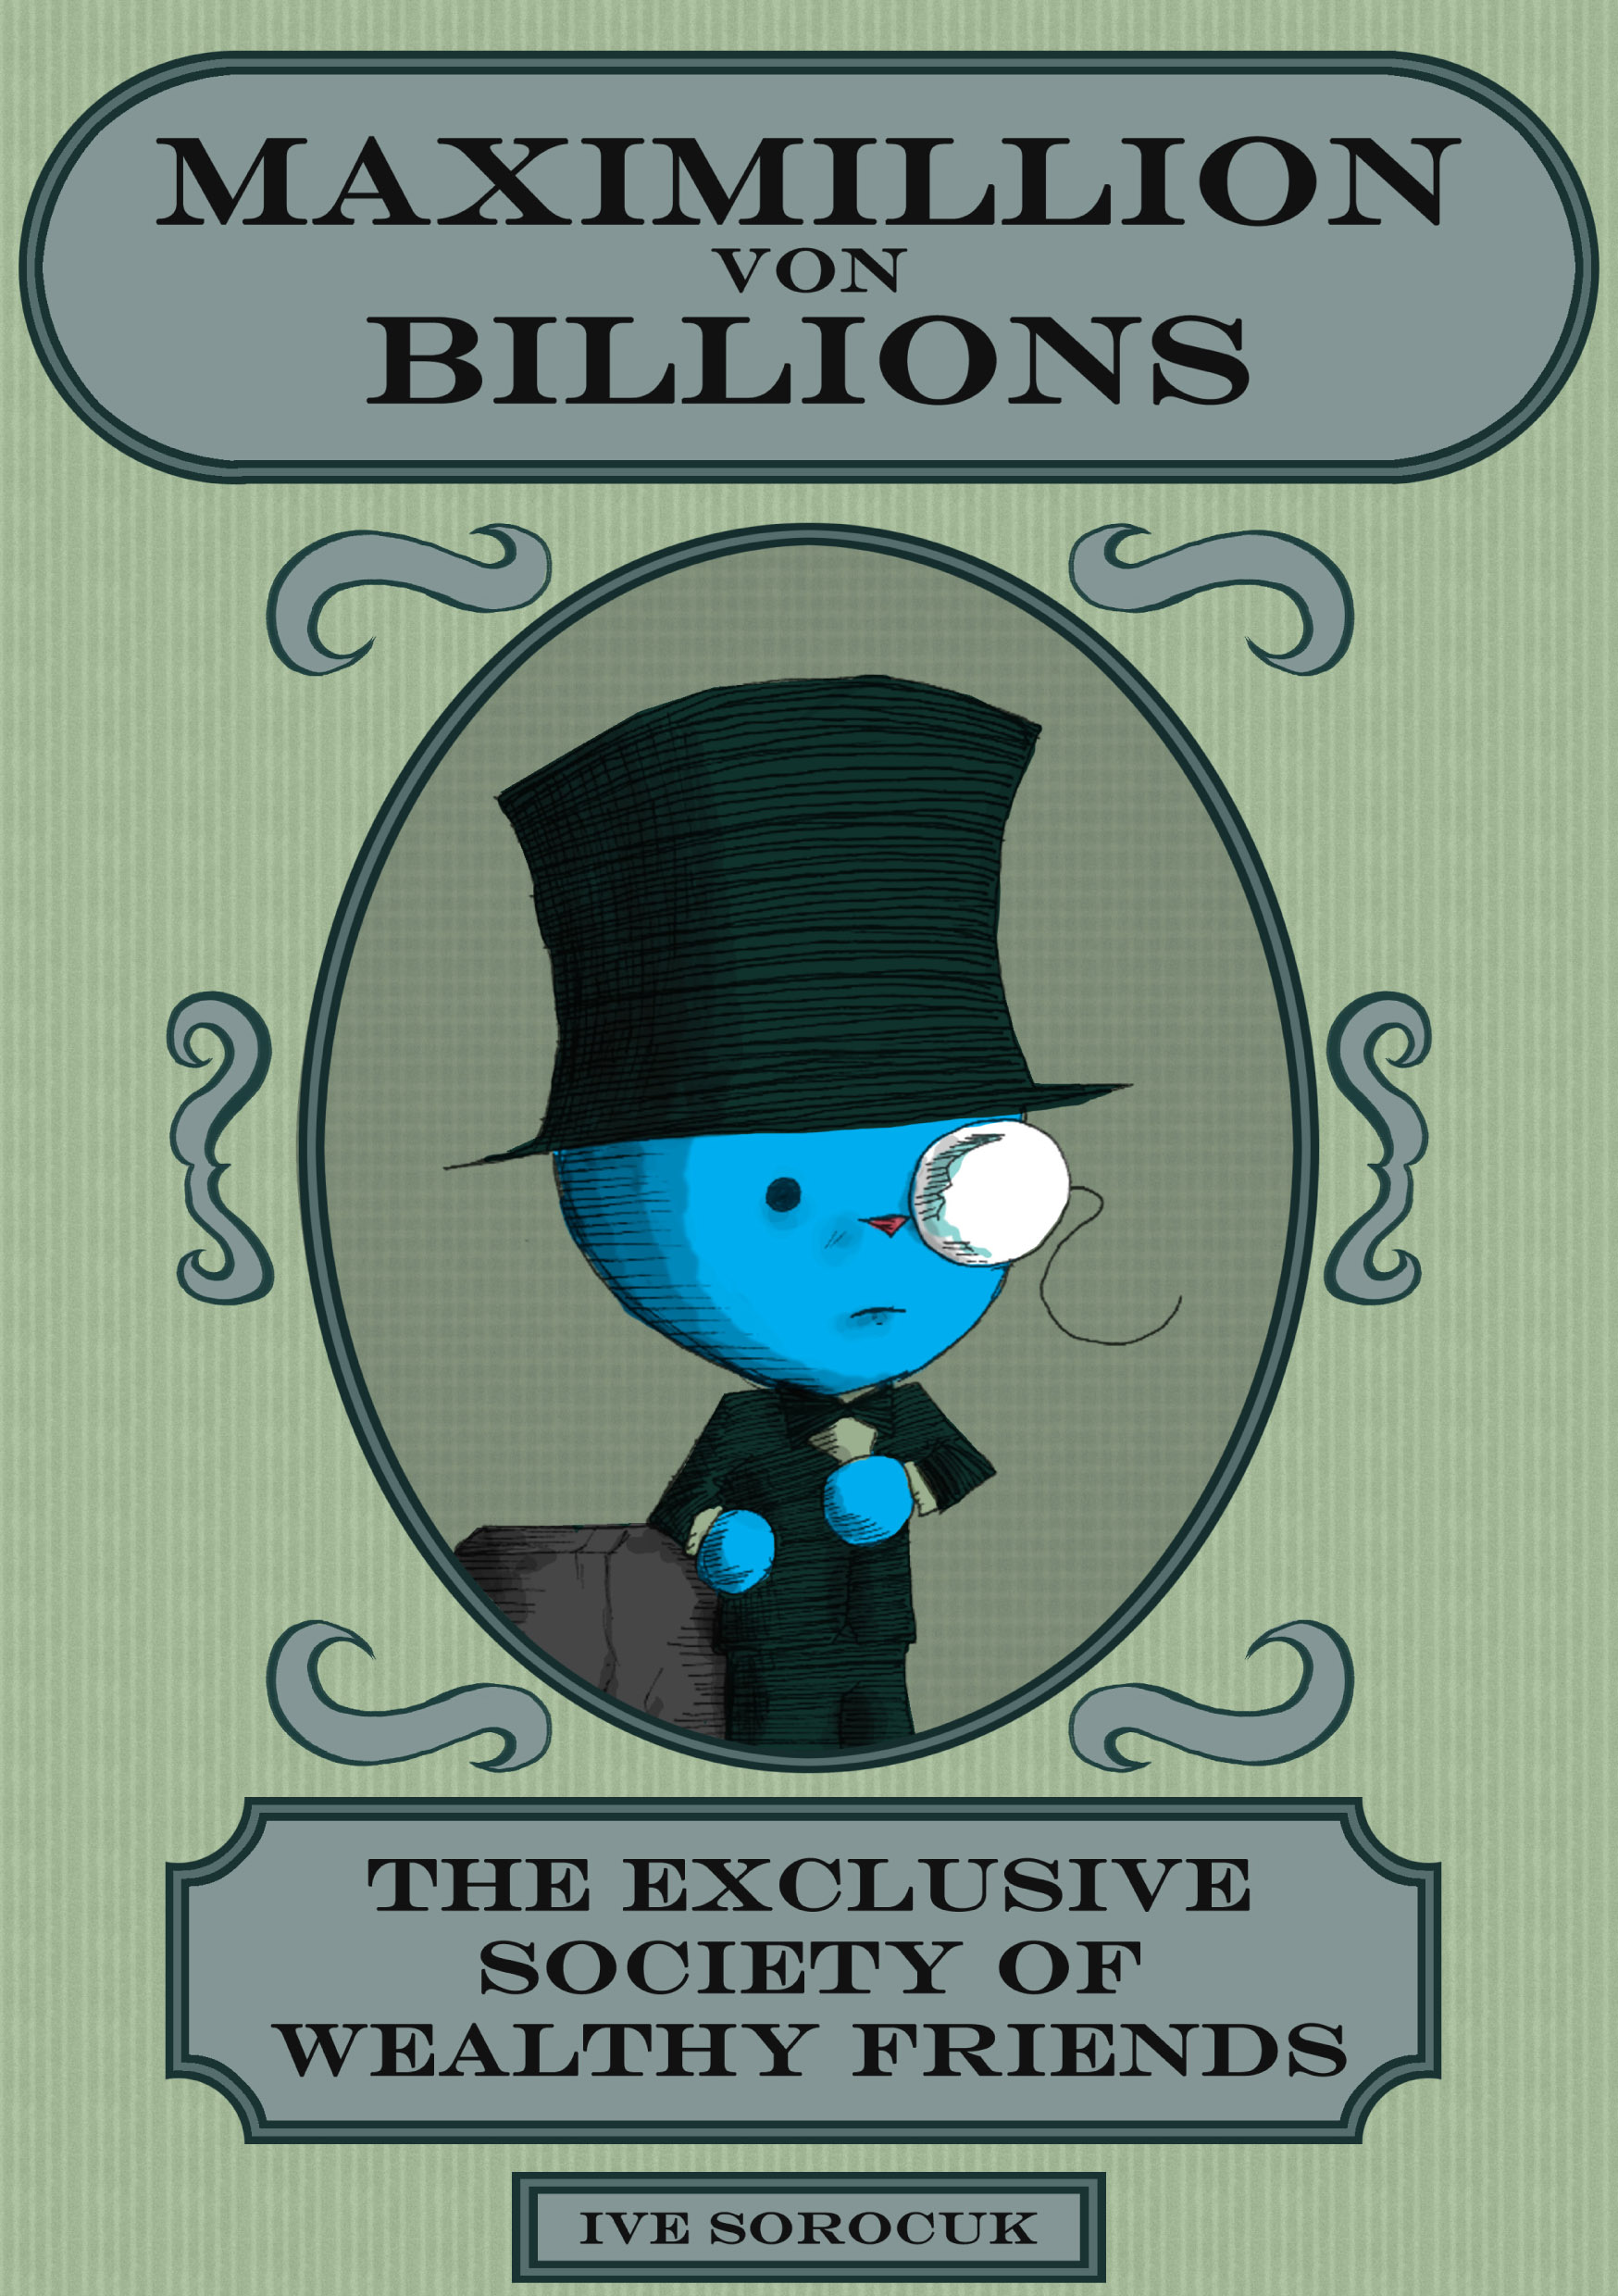 Maximillion von Billions: The Exclusive Society of Wealthy Friends